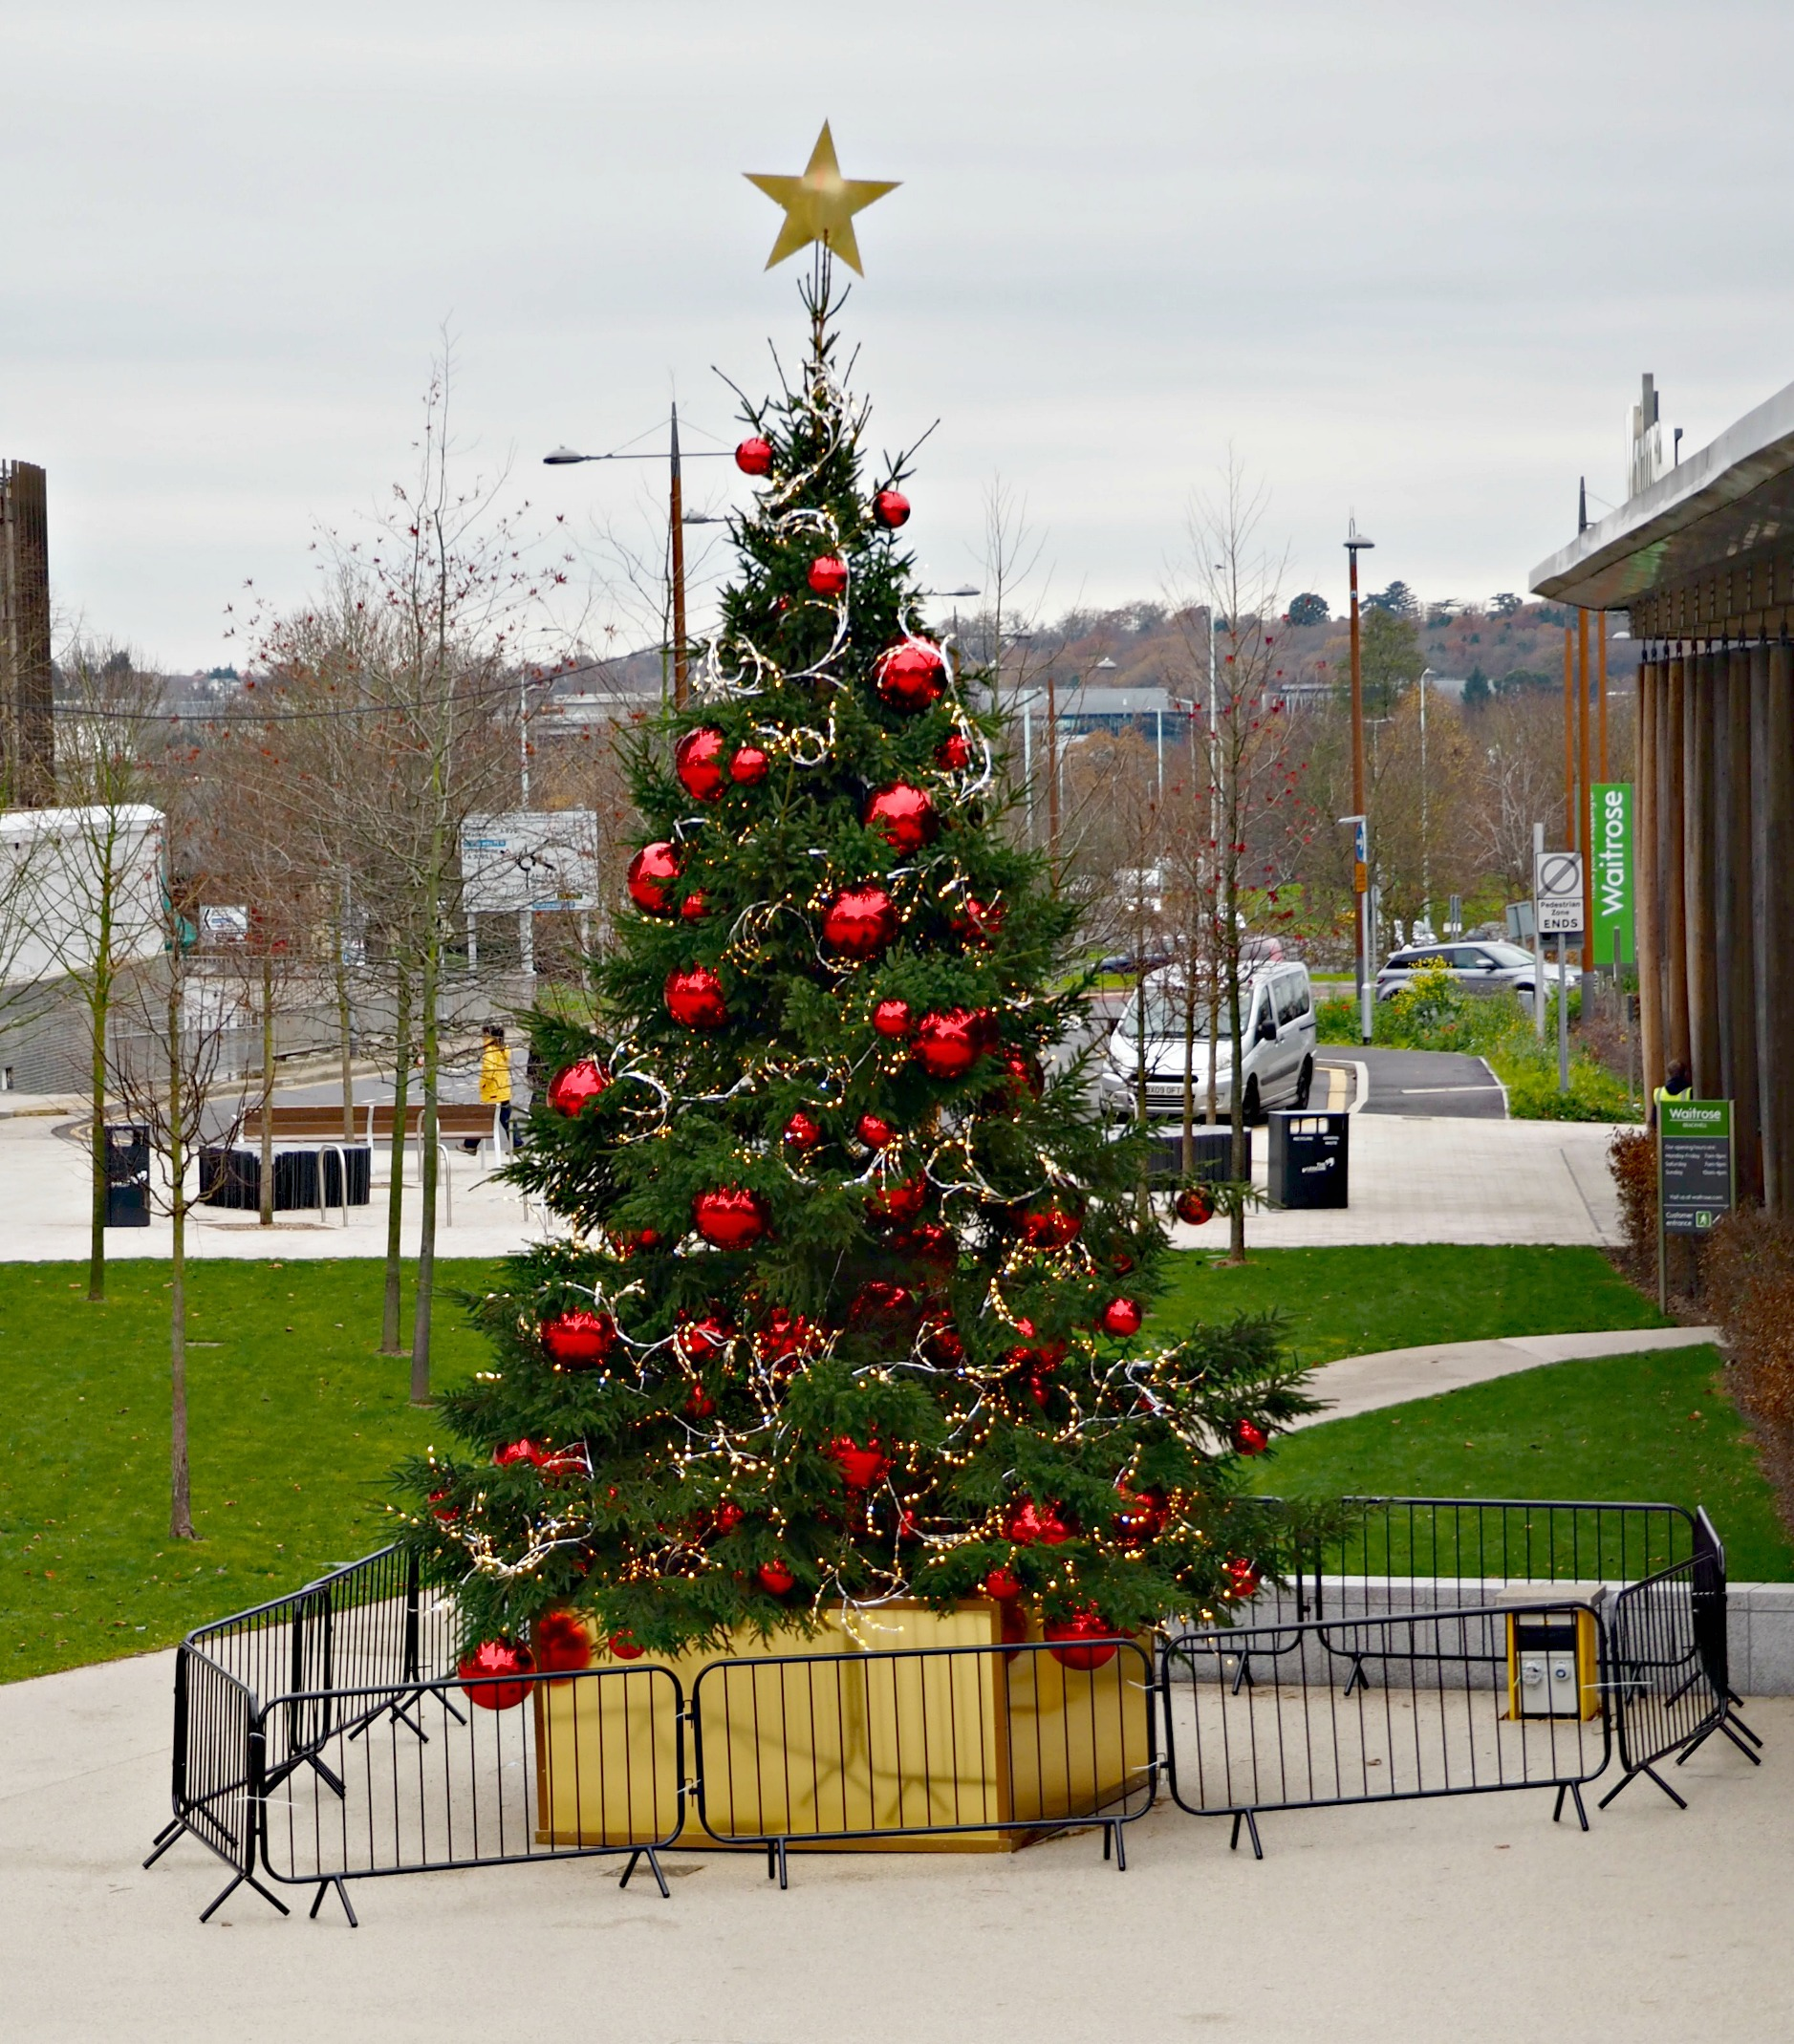 What's on at the Lexicon this Christmas in Bracknell - the Lexicon Christmas tree